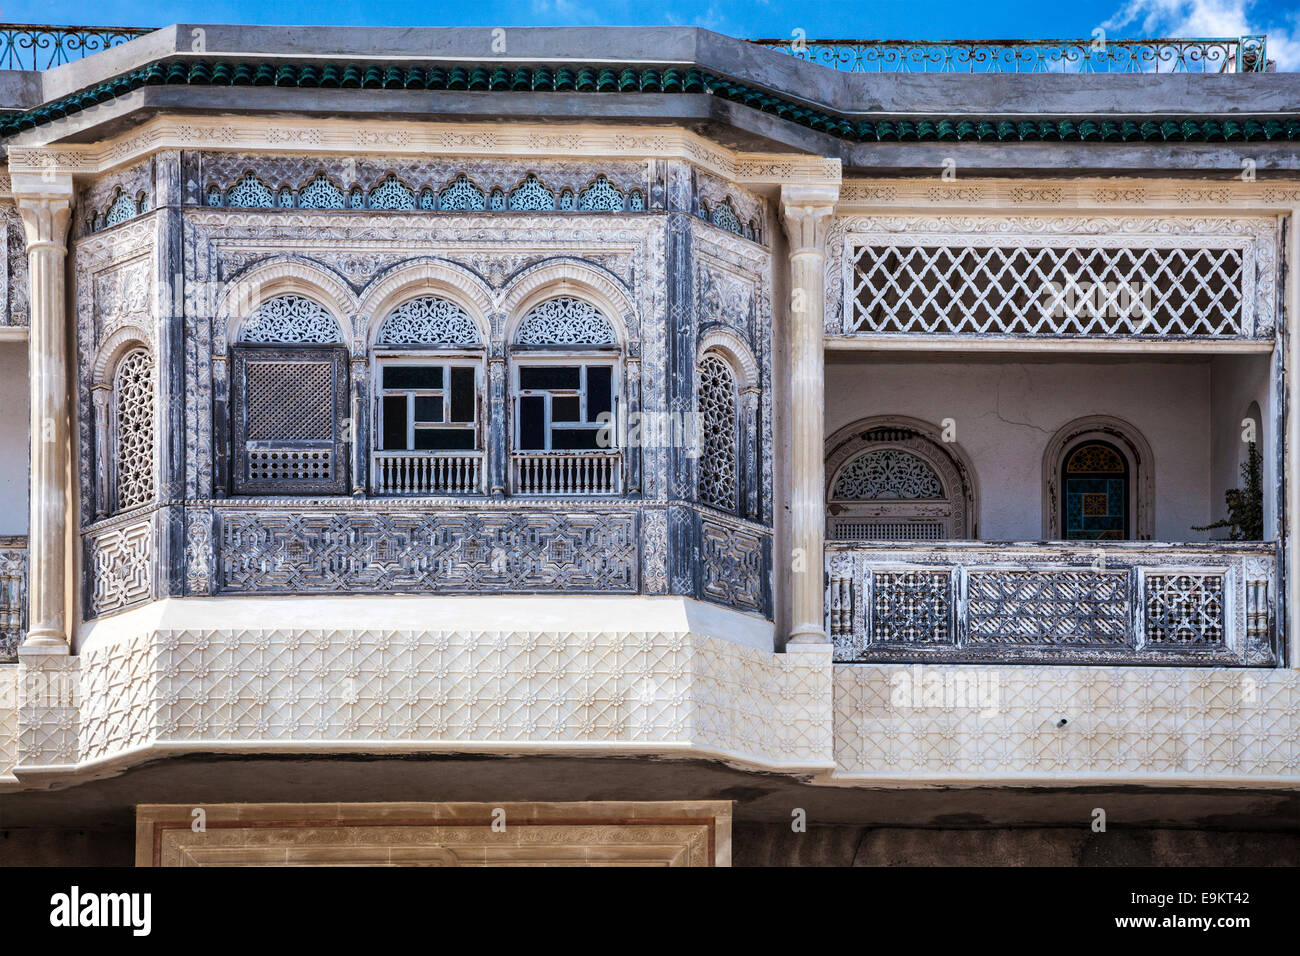 Ornate Carved Stucco Facade Of An Arabian House In Sousse,Tunisia.   Stock  Image